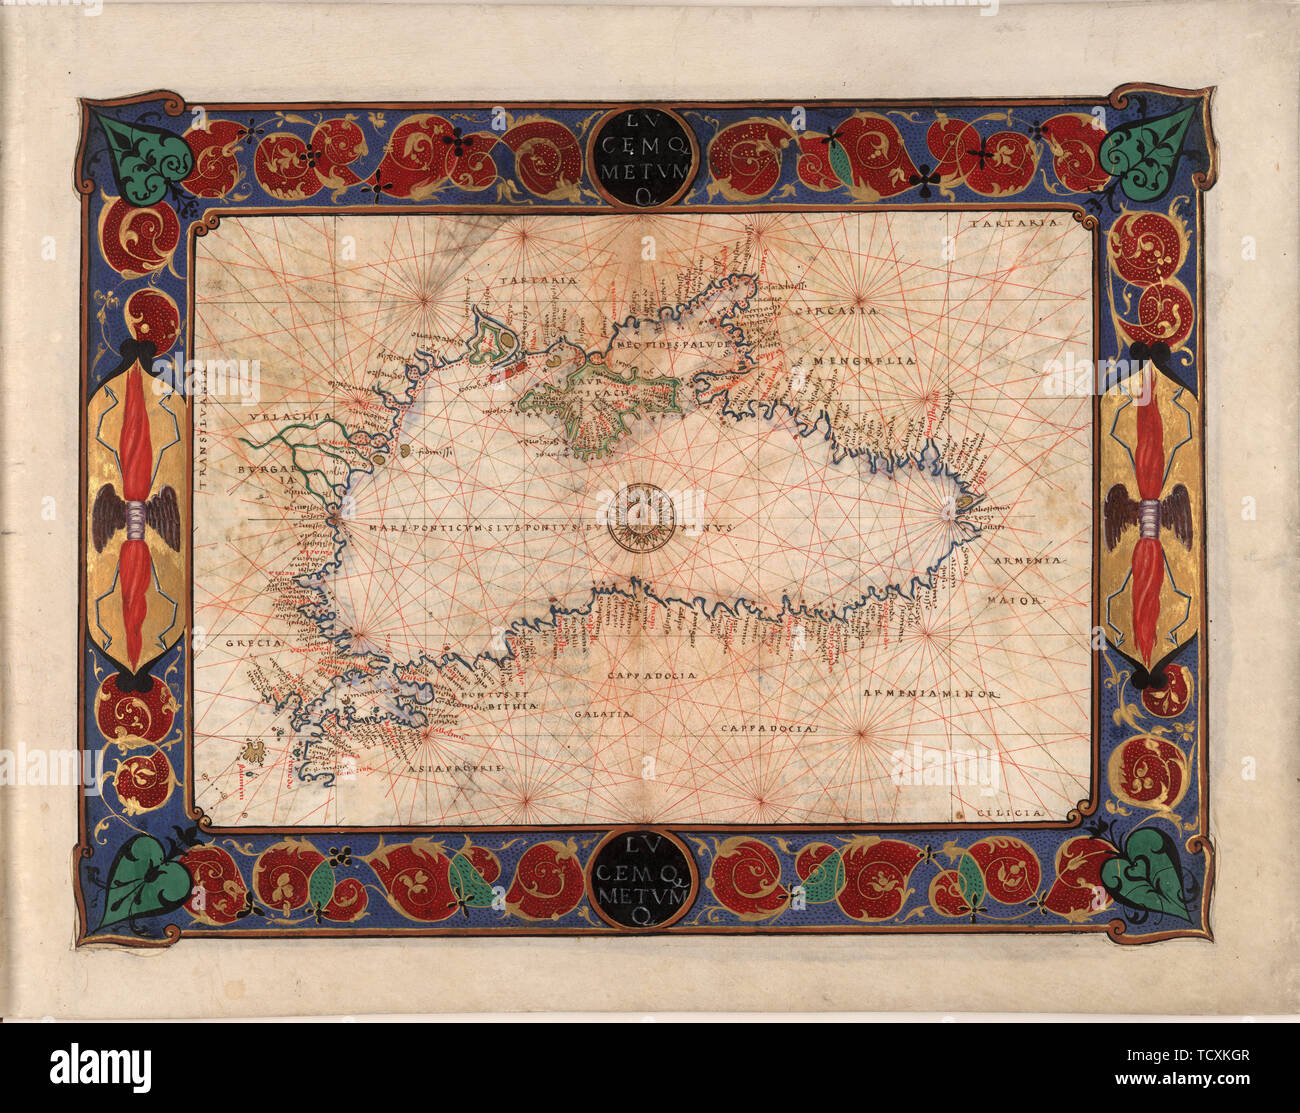 Map of the Black Sea including part of present-day Romania, Bulgaria, Turkey, Ukraine, and Russia, c. 1544. Private Collection. - Stock Image